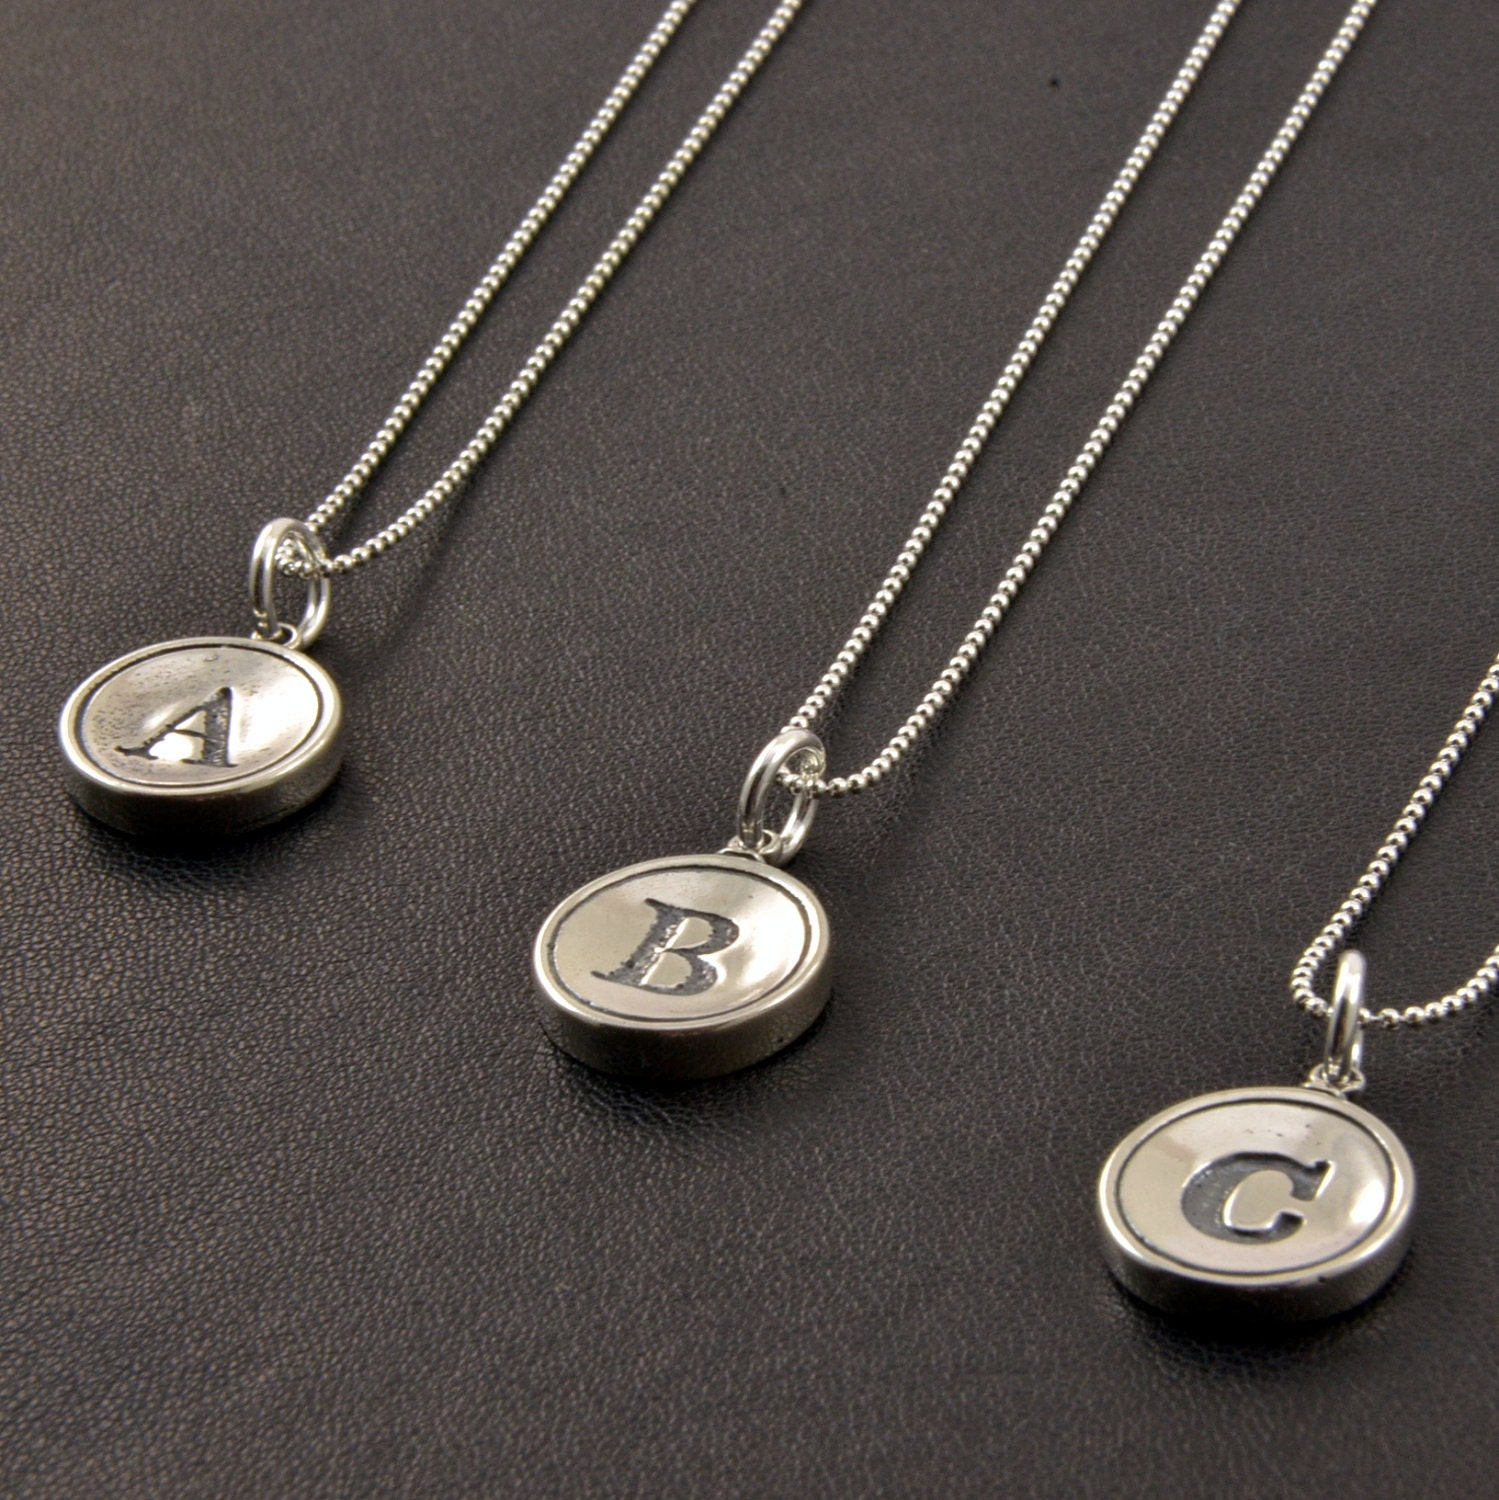 personalized jewelry sterling silver initial necklace